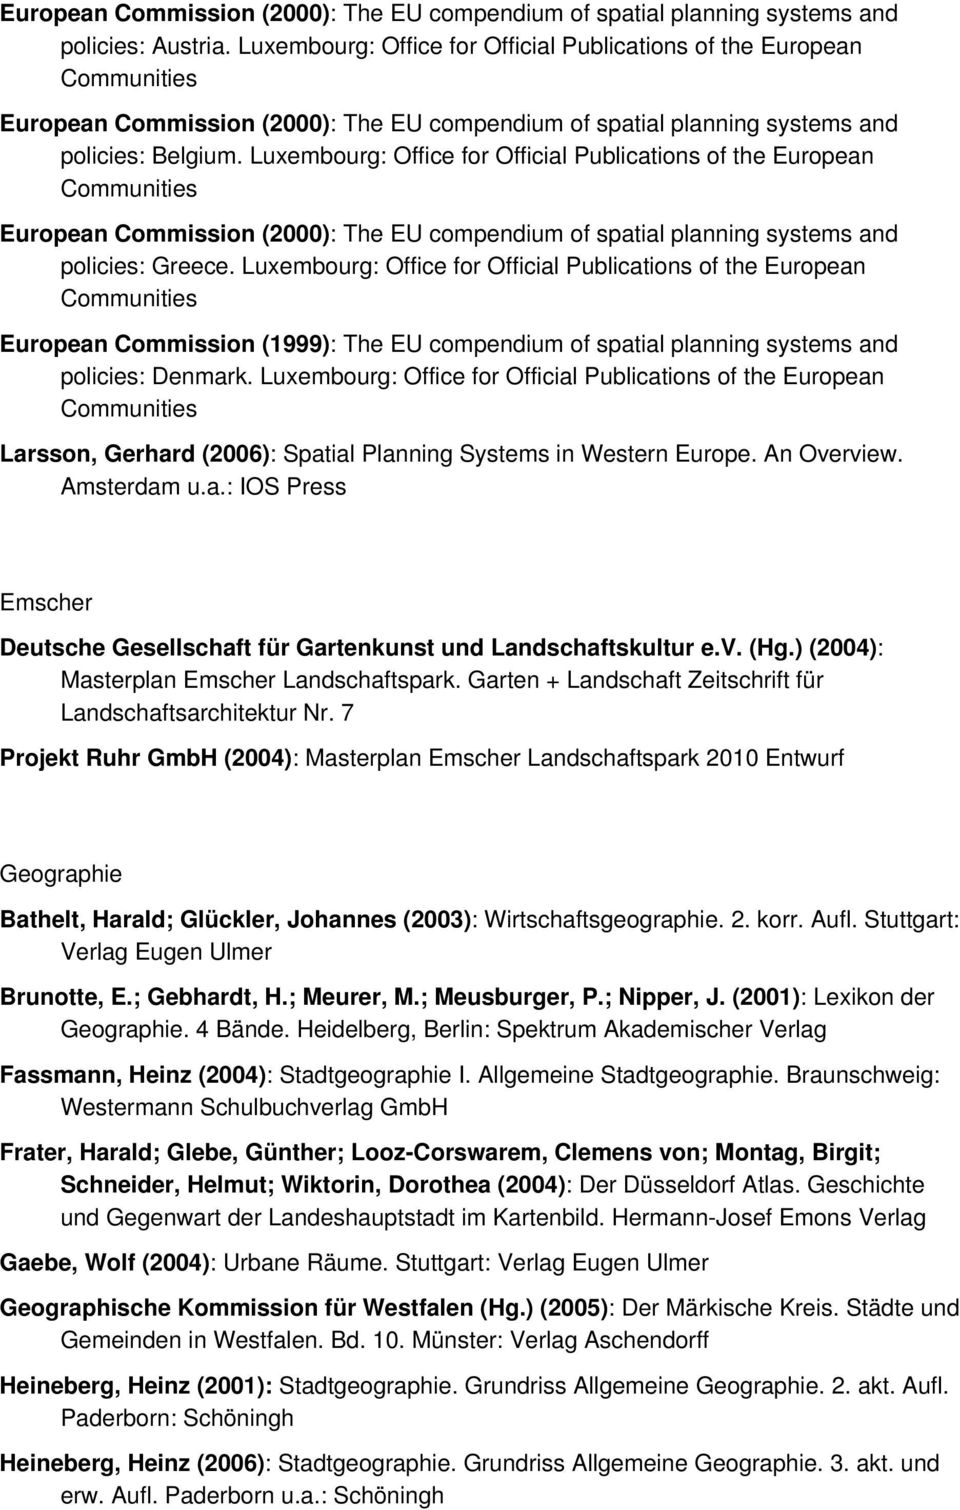 Luxembourg: Office for Official Publications of the European Larsson, Gerhard (2006): Spatial Planning Systems in Western Europe. An Overview. Amsterdam u.a.: IOS Press Emscher Deutsche Gesellschaft für Gartenkunst und Landschaftskultur e.